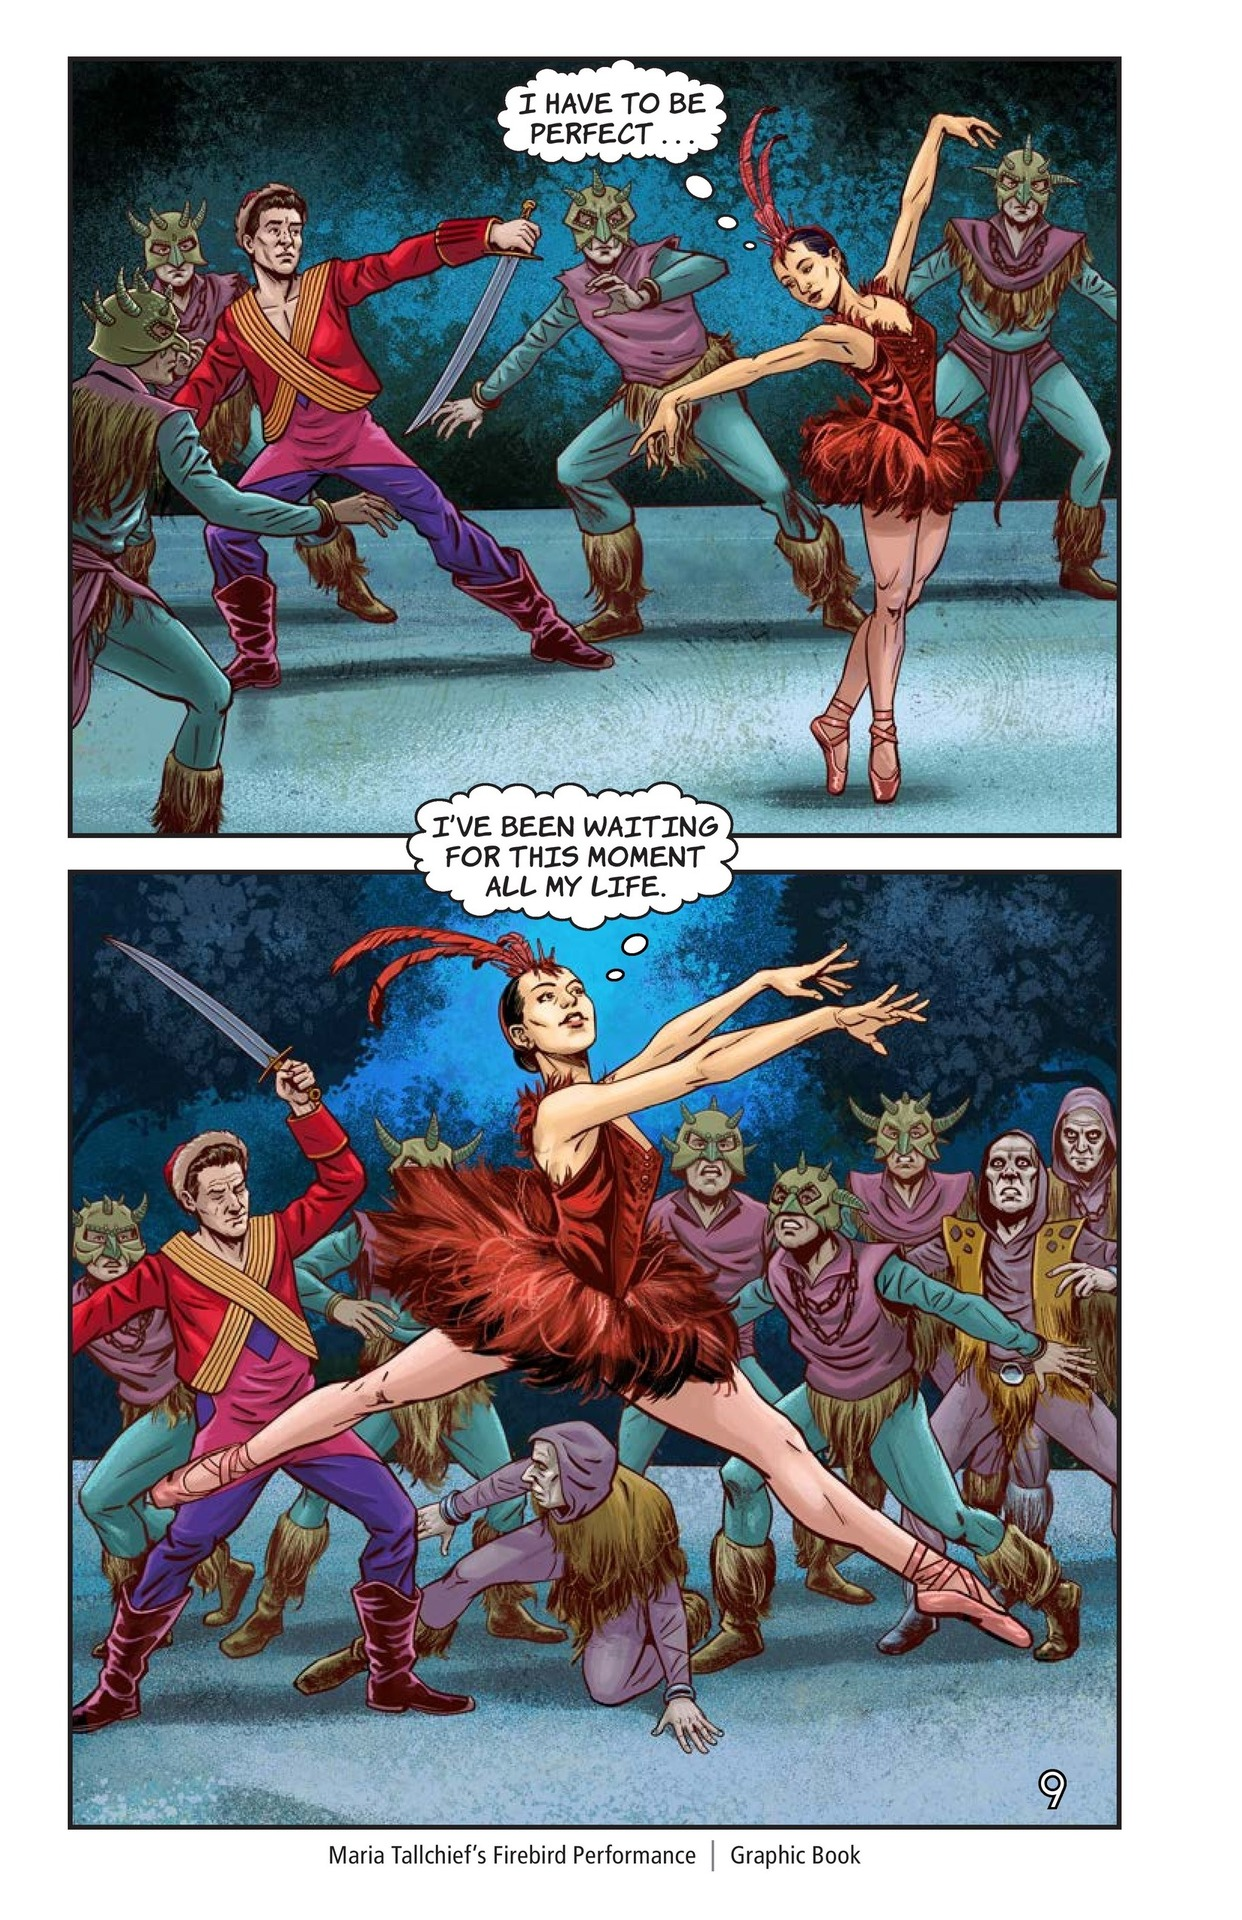 Book Preview For Maria Tallchief's Firebird Performance Page 10